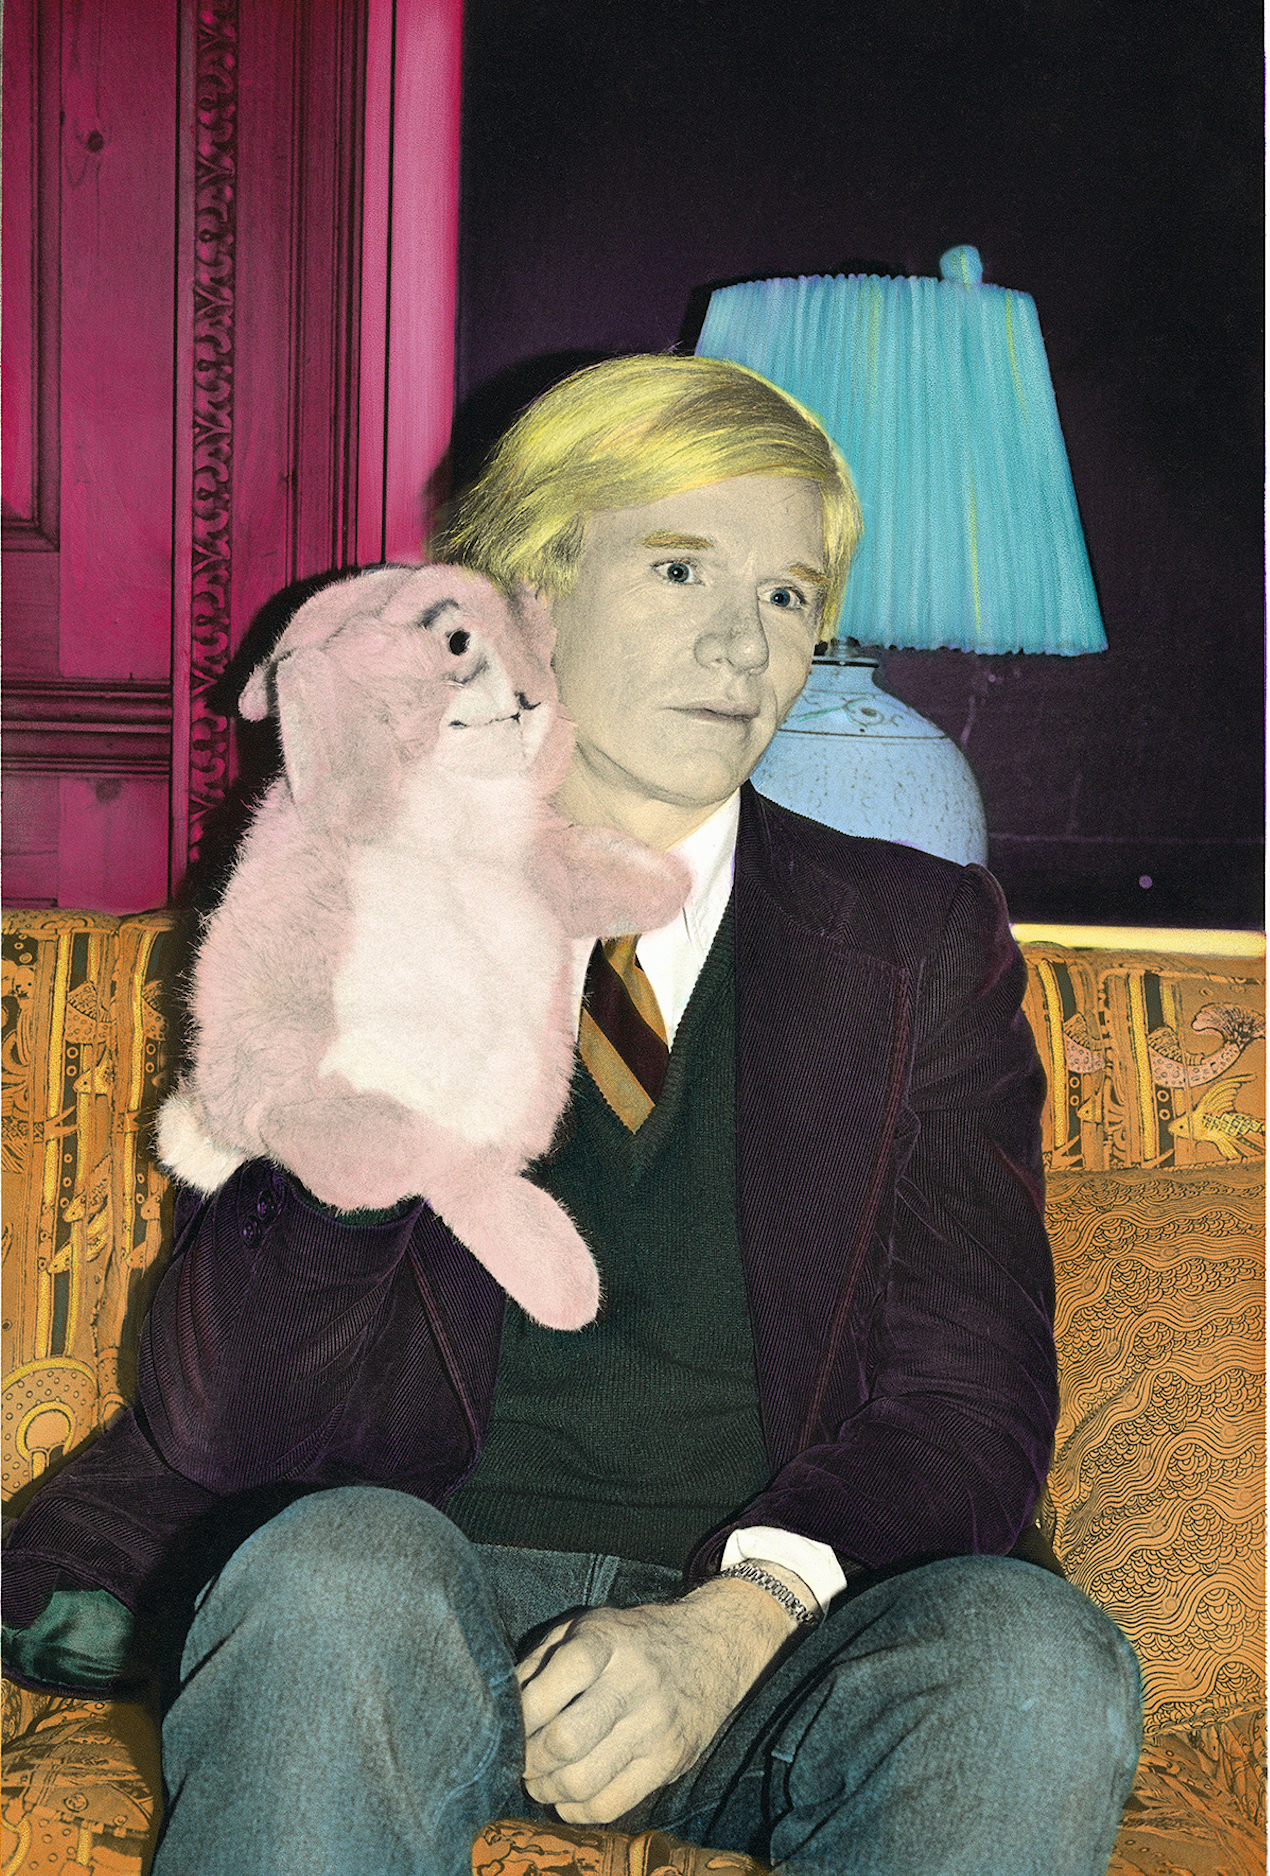 andy-warhol-and-the-rabbit-2016